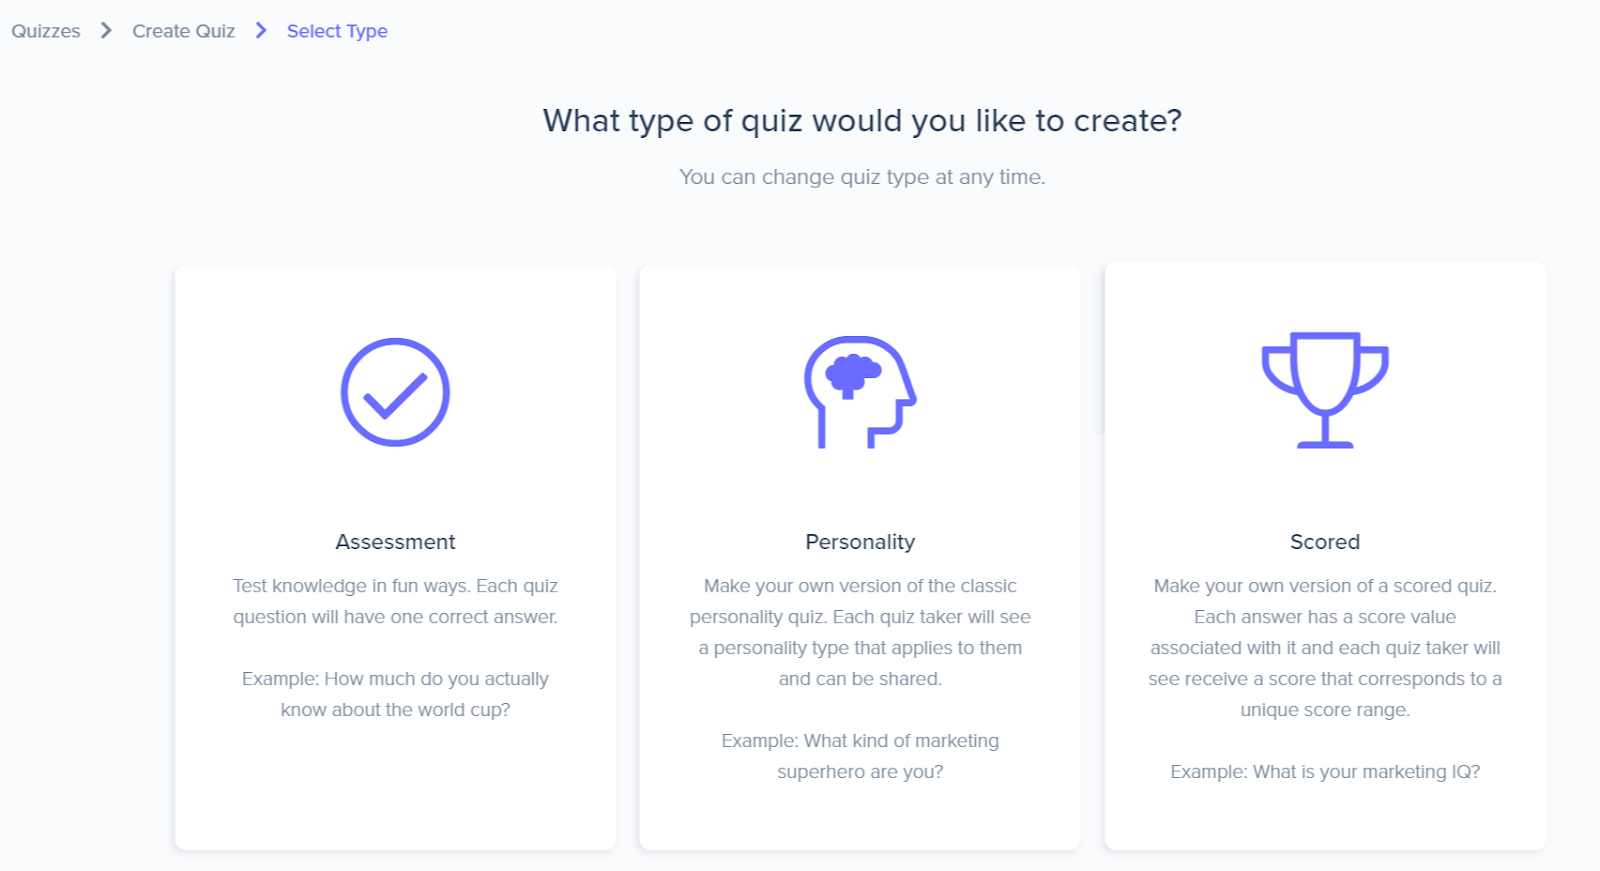 types of quizzes you can make with Interact - assessment, personality, and scored